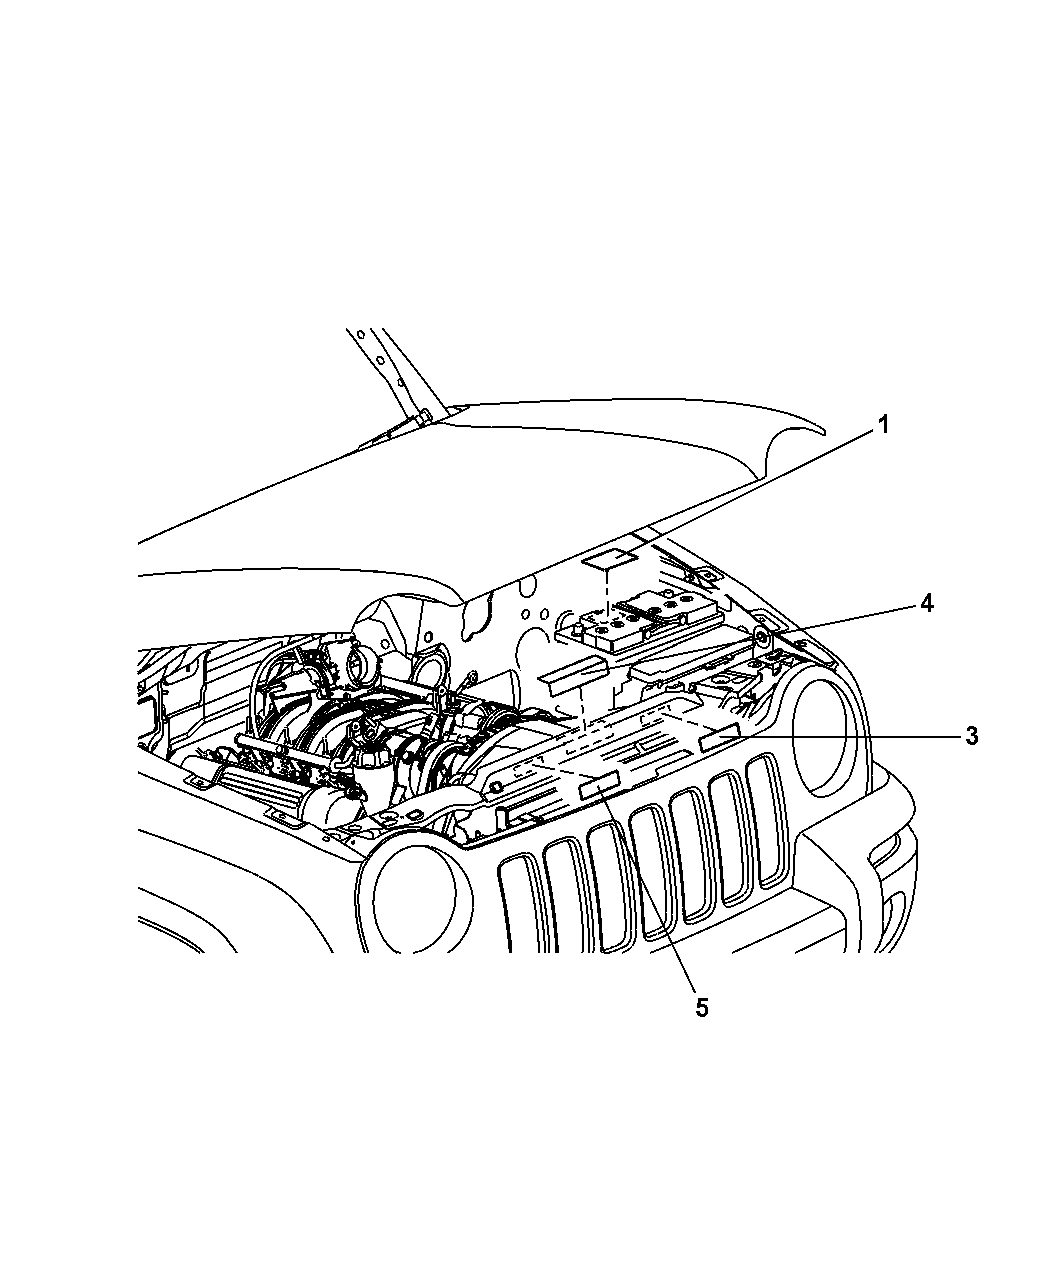 2005 Jeep Liberty Engine Compartment